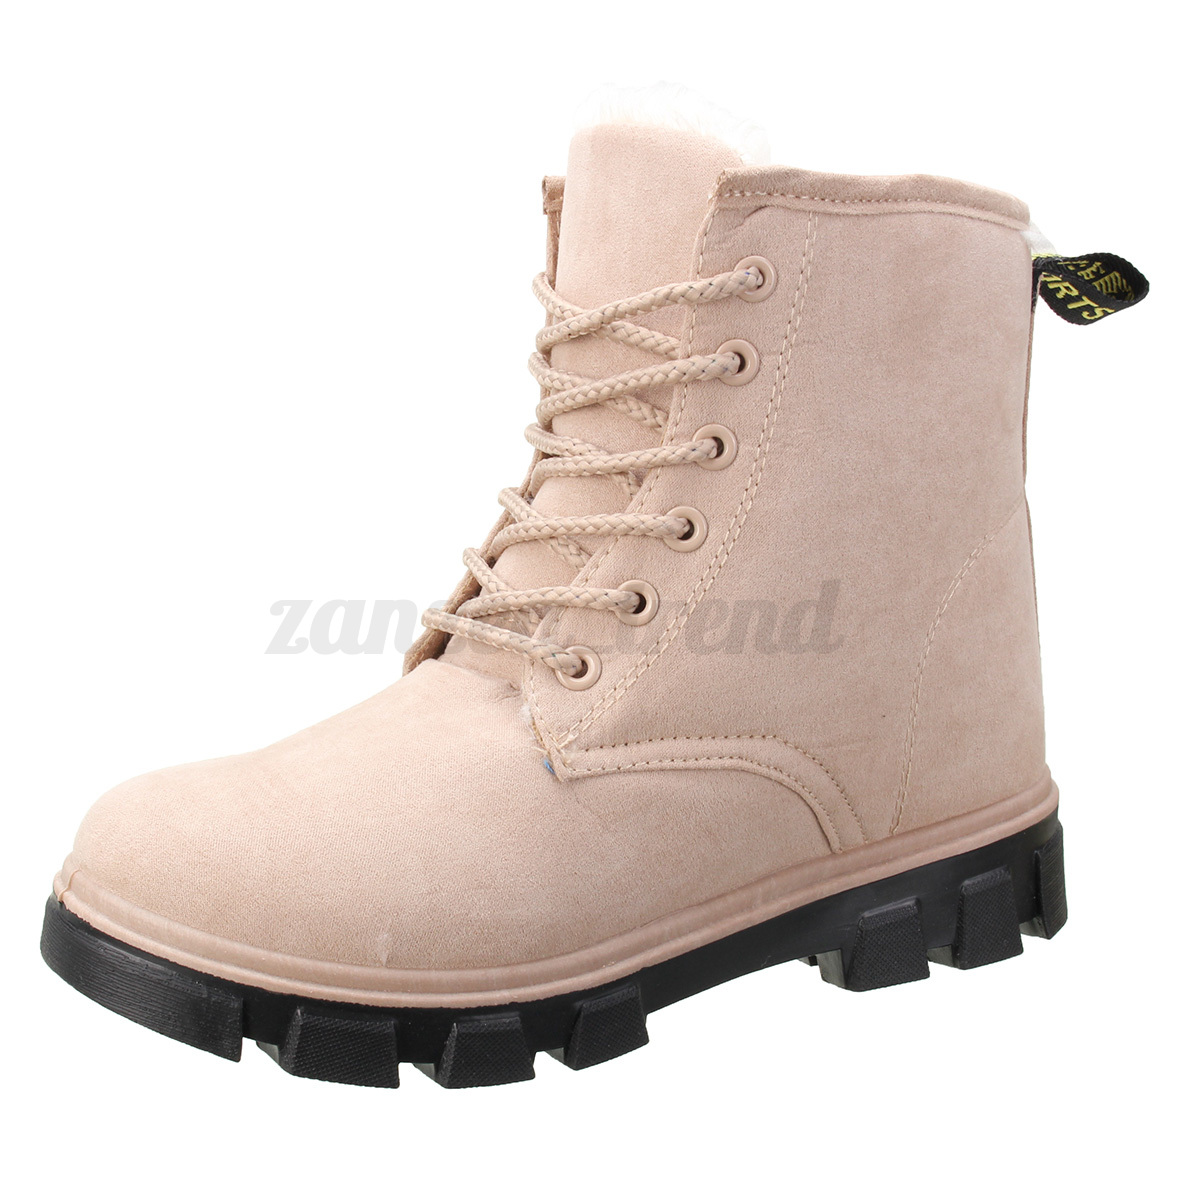 womens lace up winter warm snow ankle boots fur